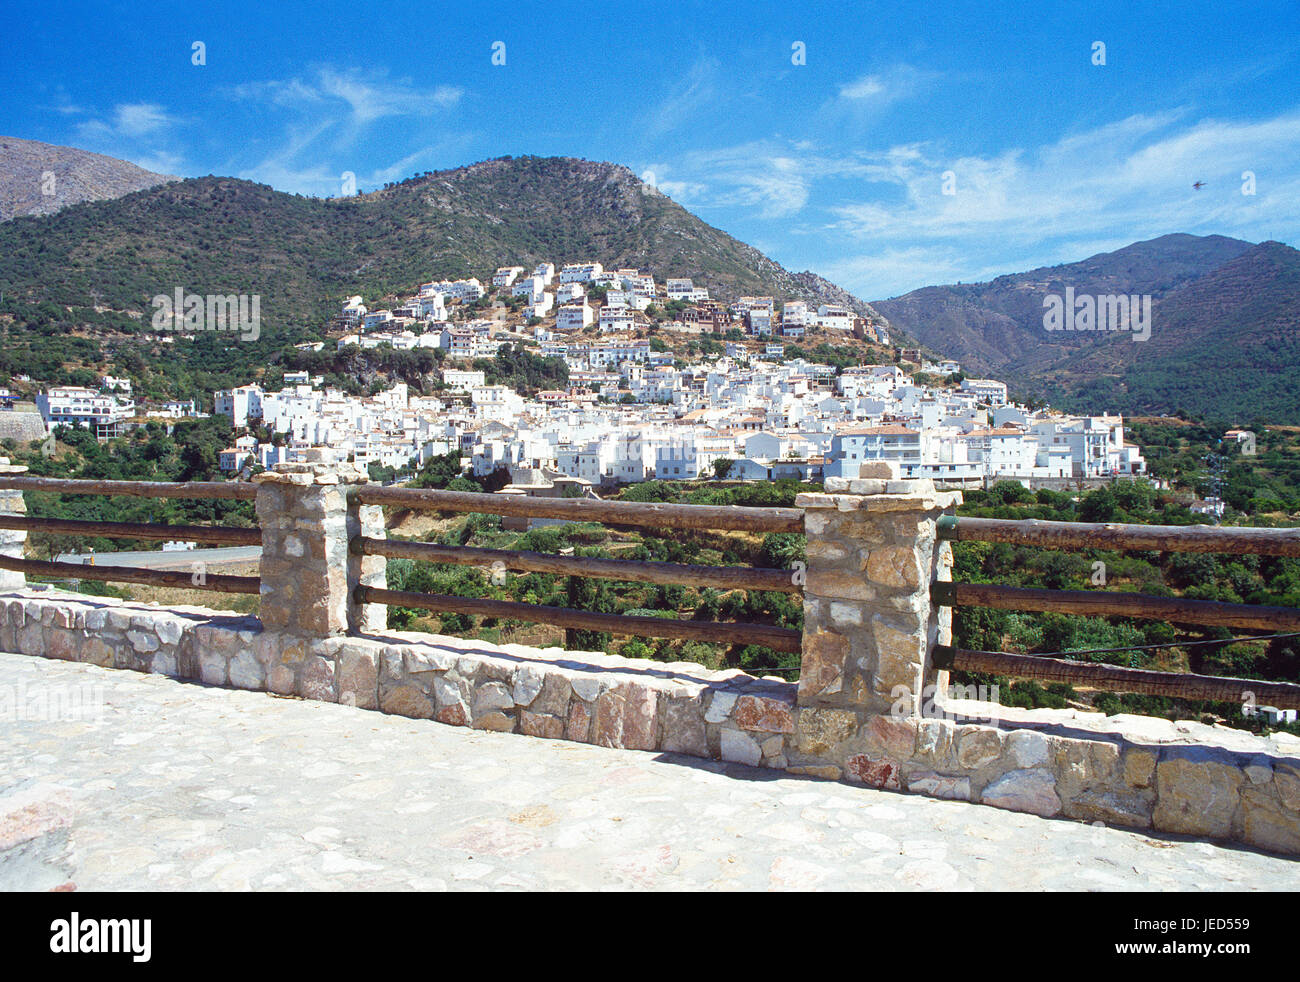 Viewpoint over the village. Ojen, Malaga province, Andalucia, Spain. - Stock Image